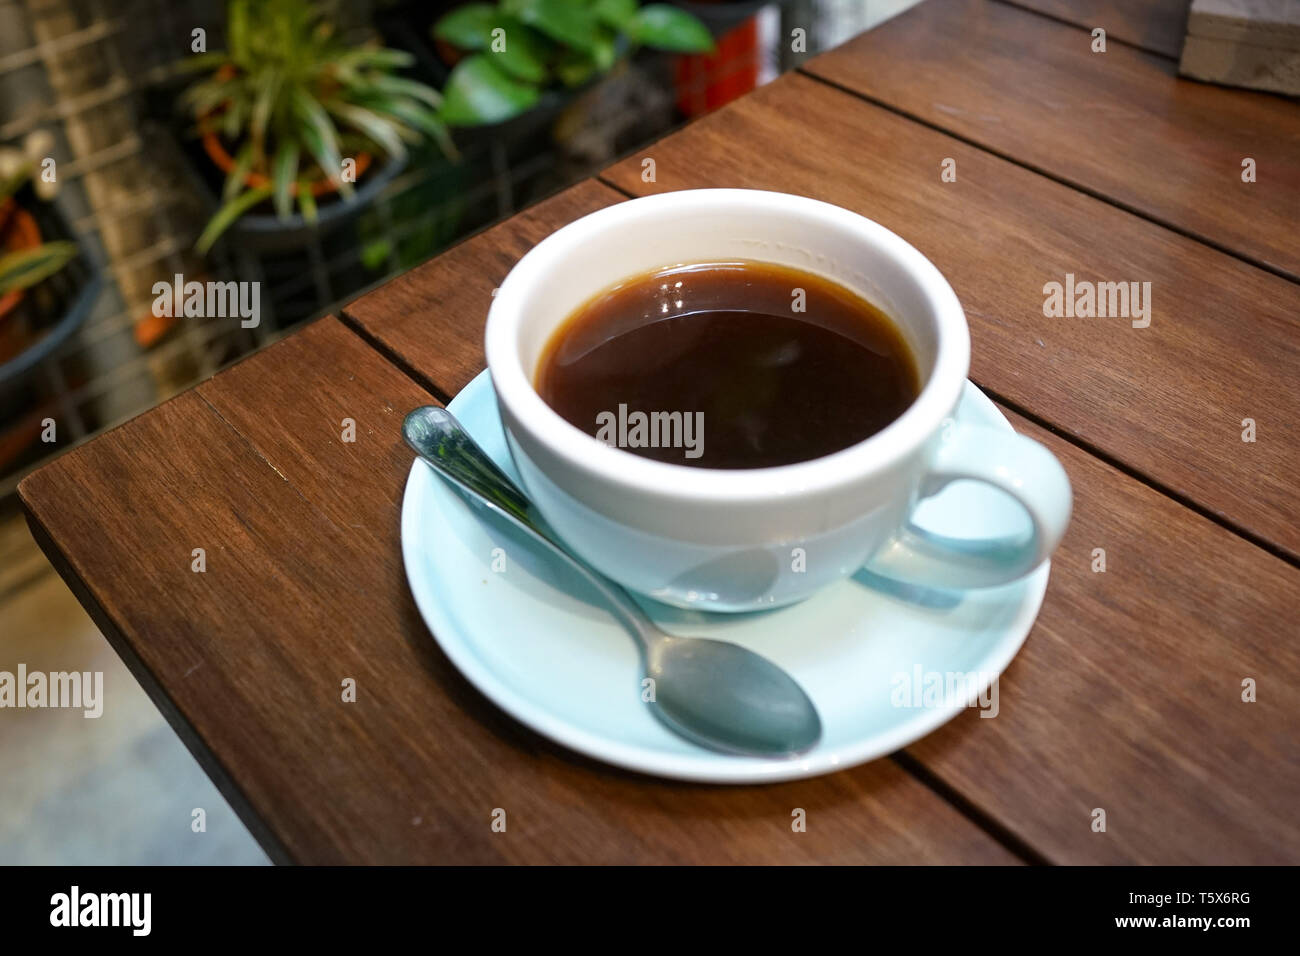 Black coffee, Americano in a cute blue color cup on wooden table - Stock Image